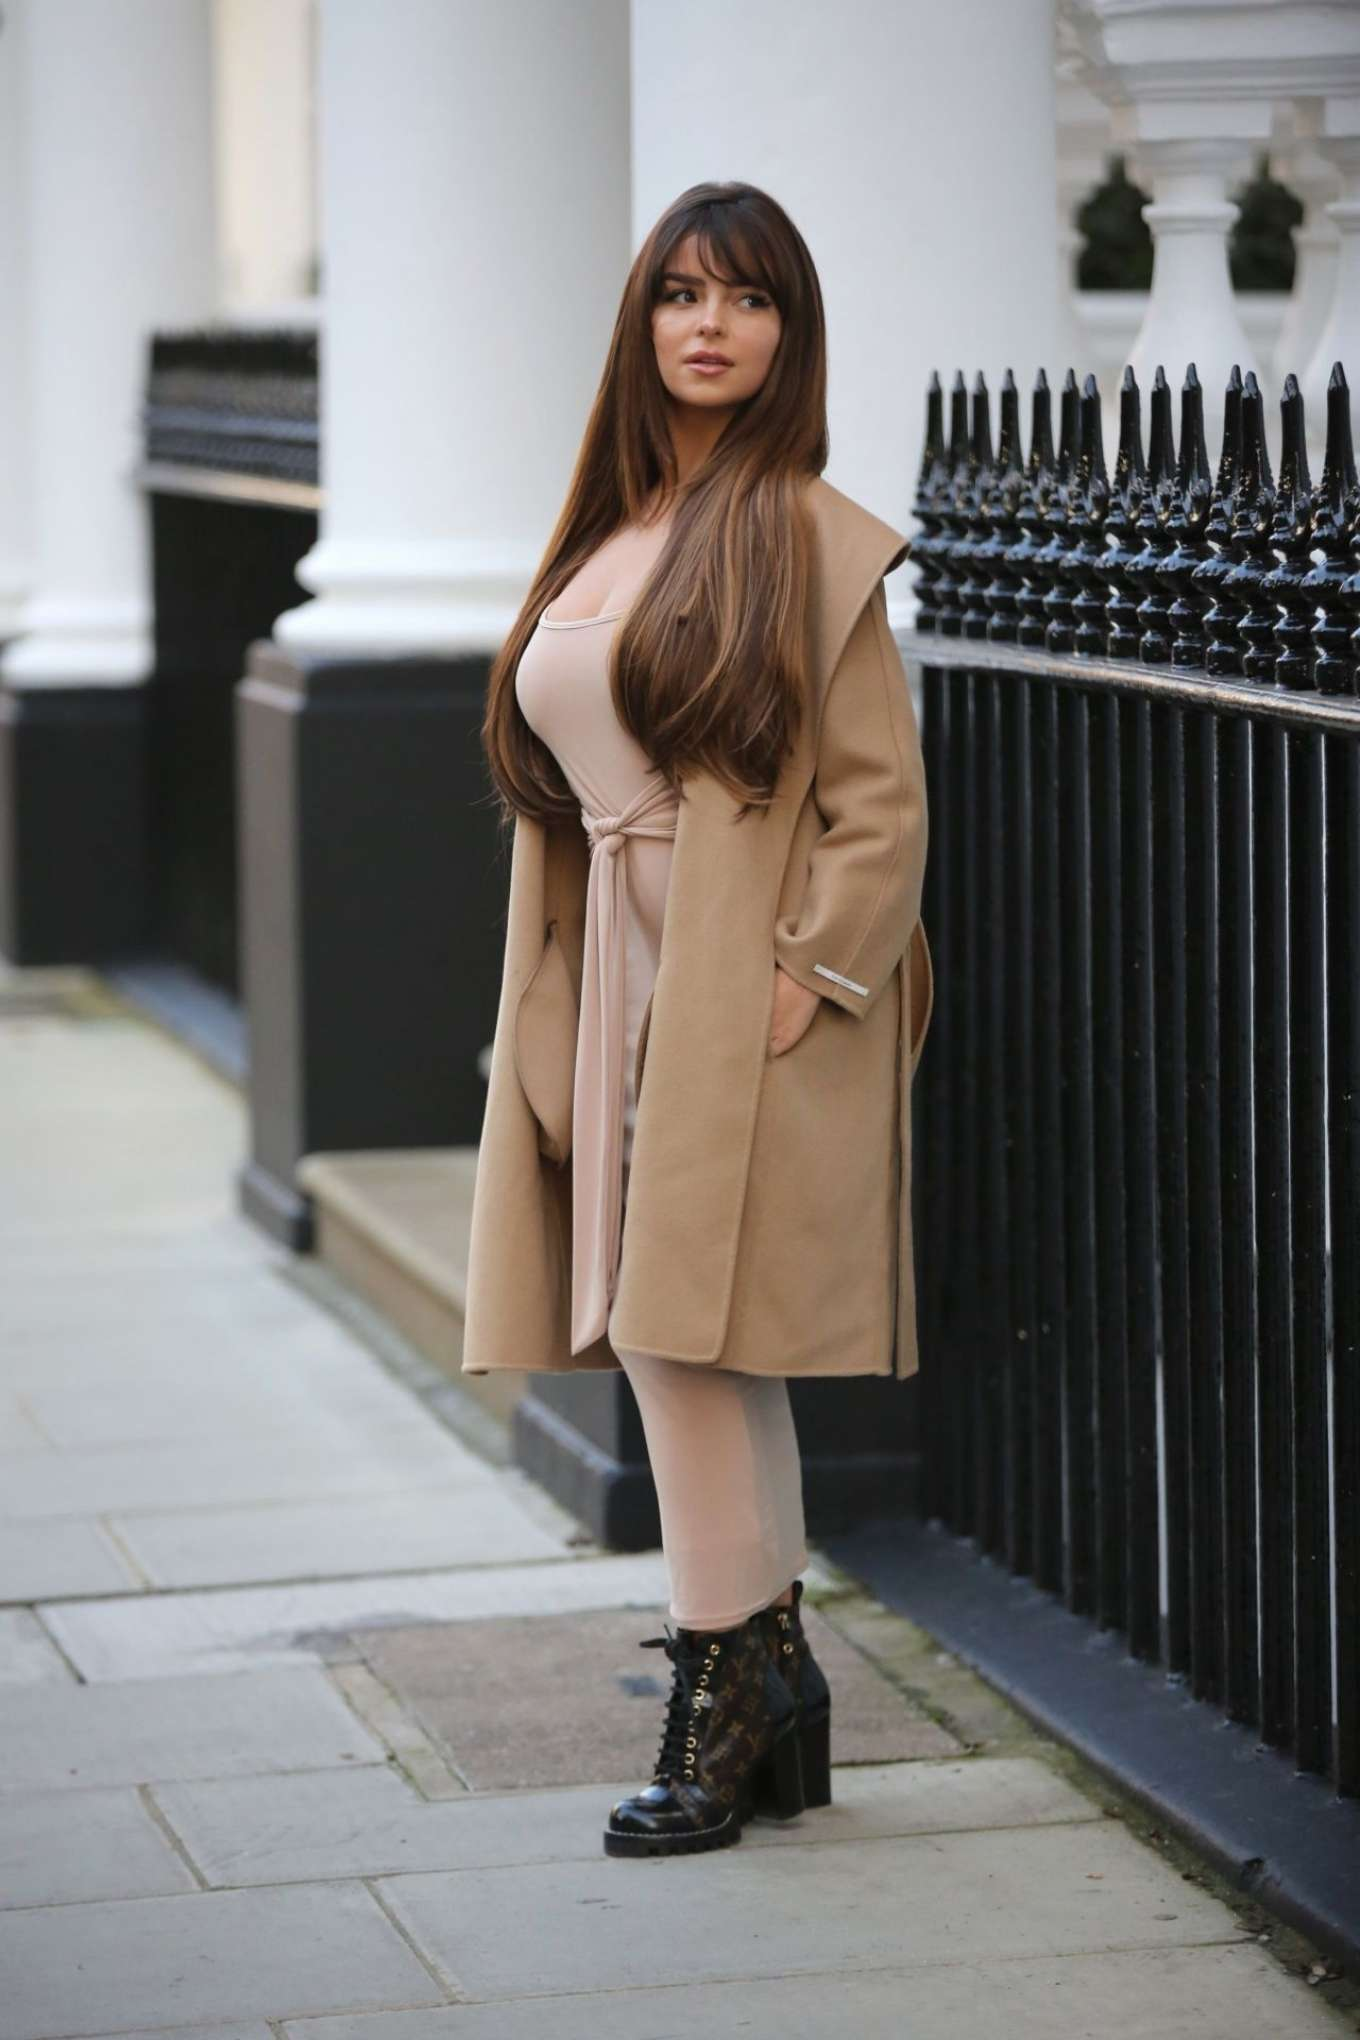 Demi Rose Mawby 2019 : Demi Rose Mawby – Pictured at Pop Up Boutique in London-05